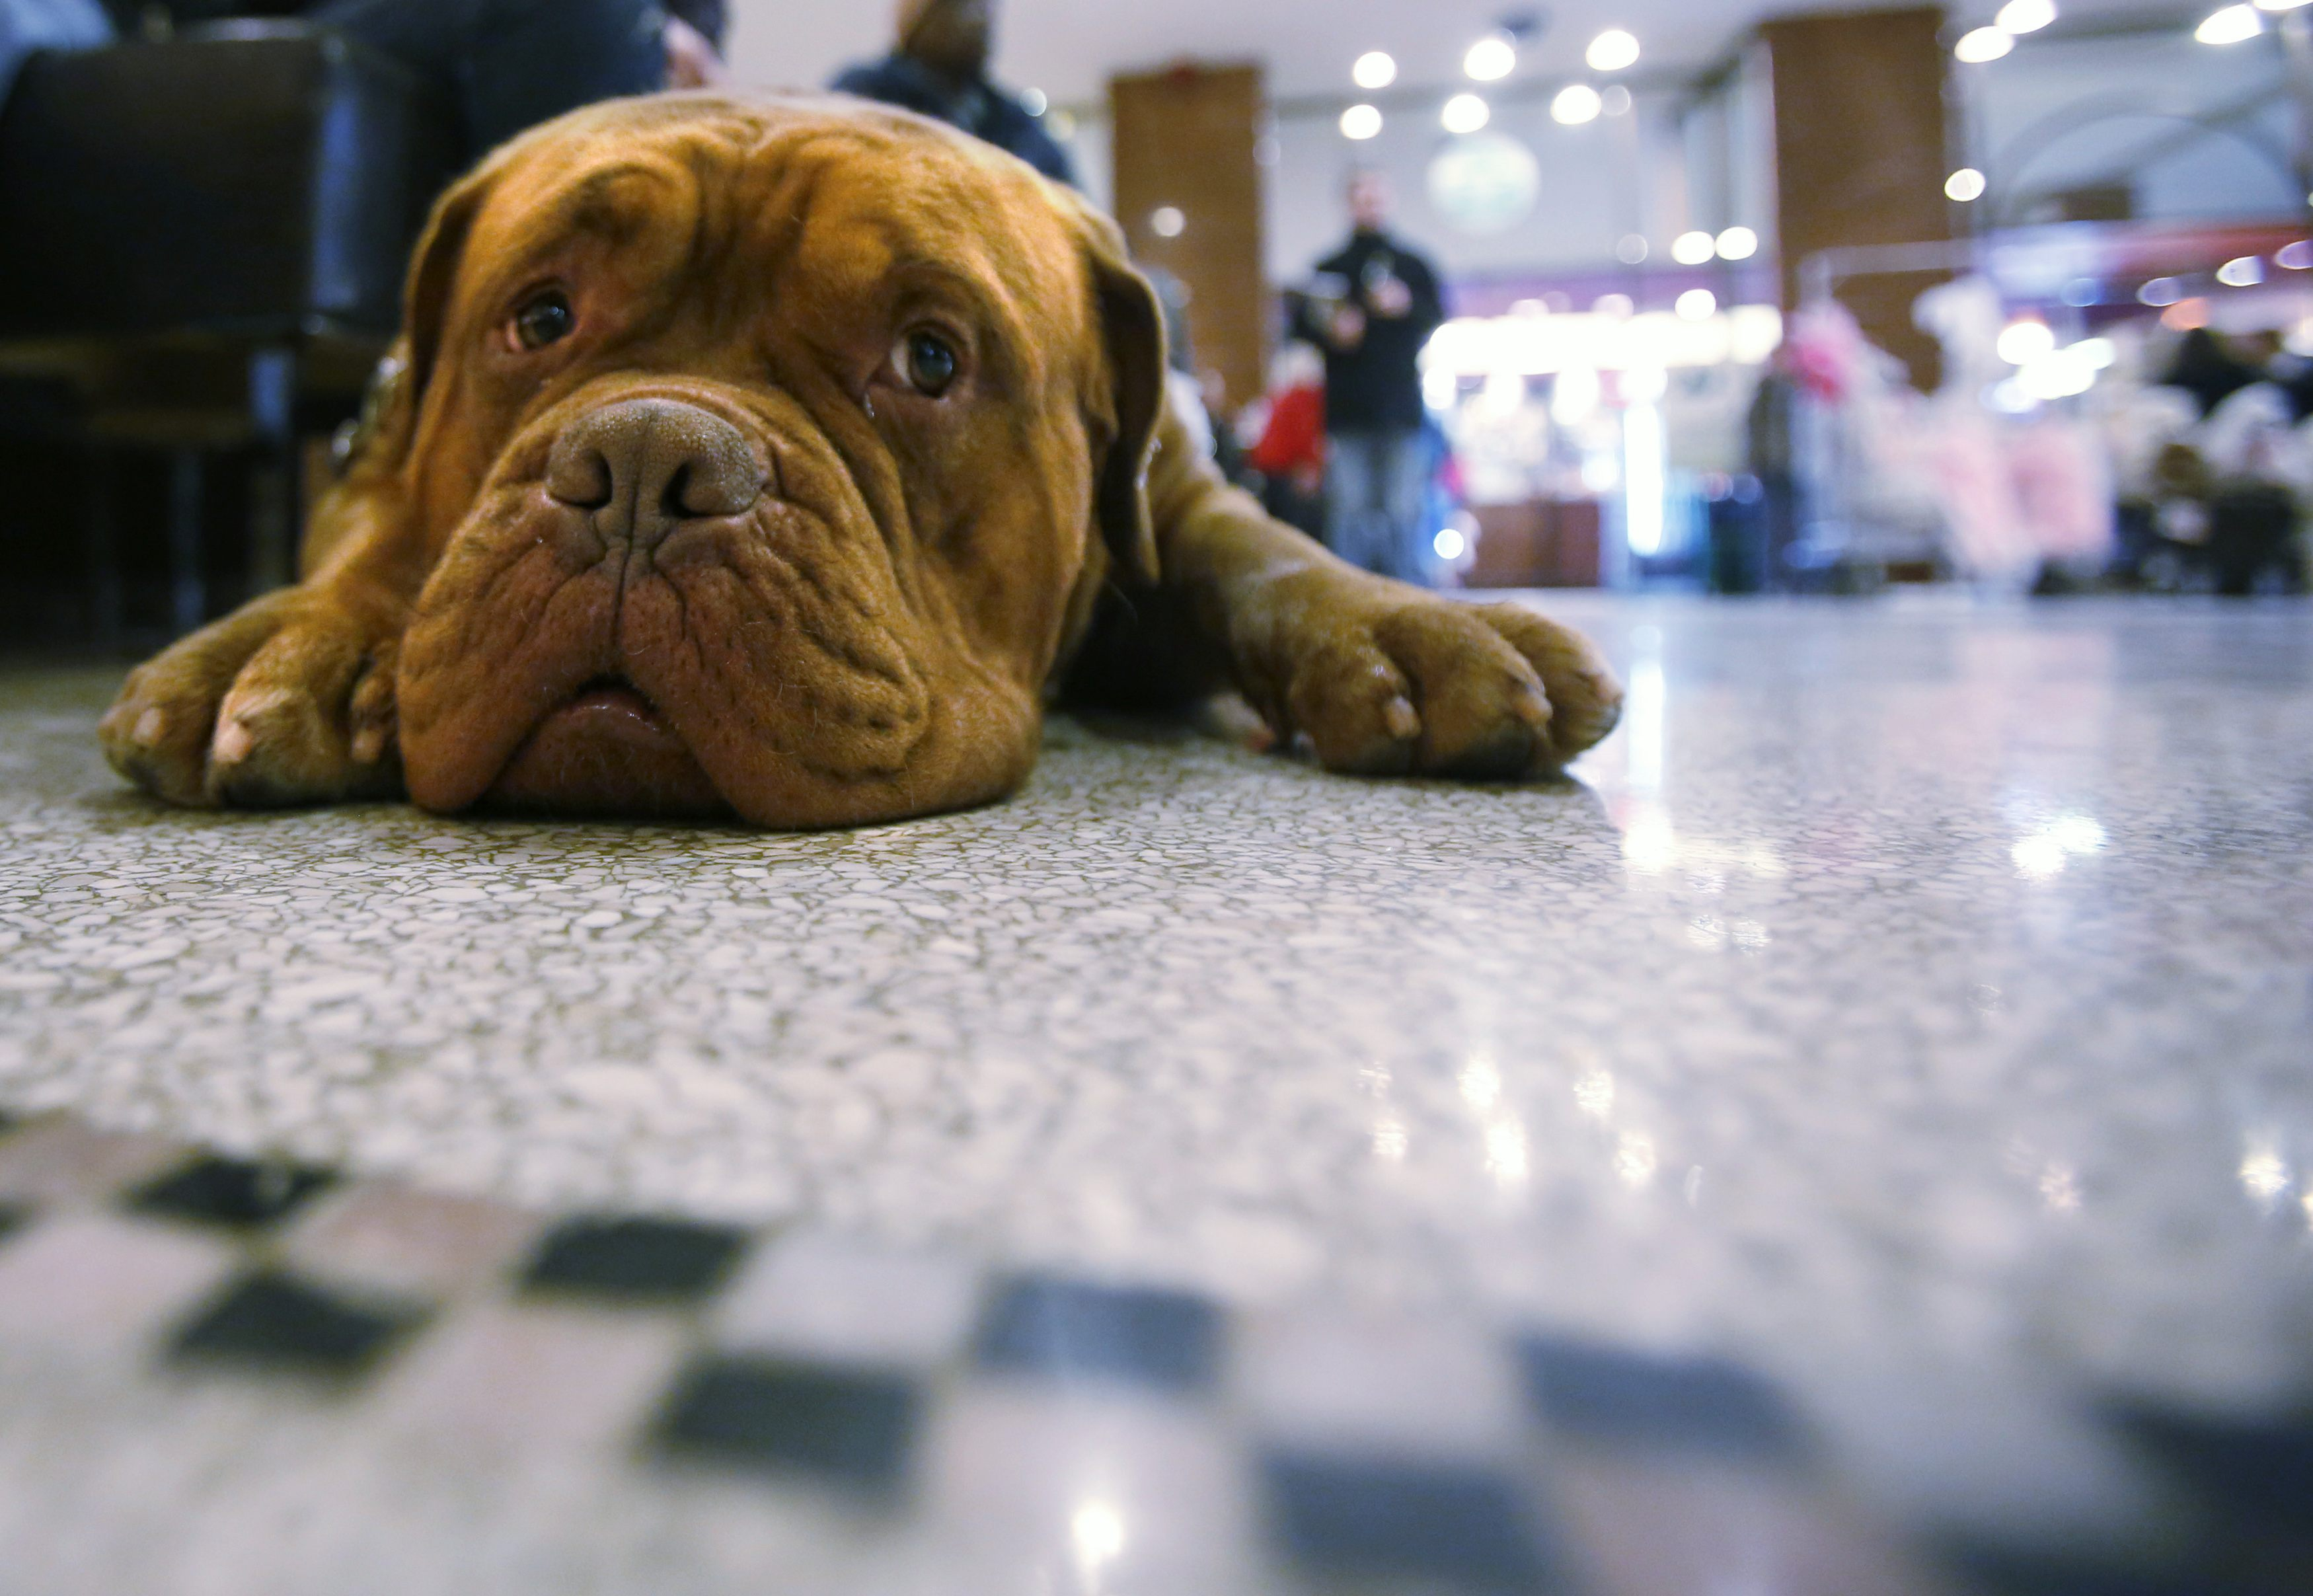 Two-year-old Azlo, a Dogue de Bordeux, waits in the lobby for his room to be ready at the Hotel Pennsylvania in advance of the Westminster Dog Show. ? Reuters Photo